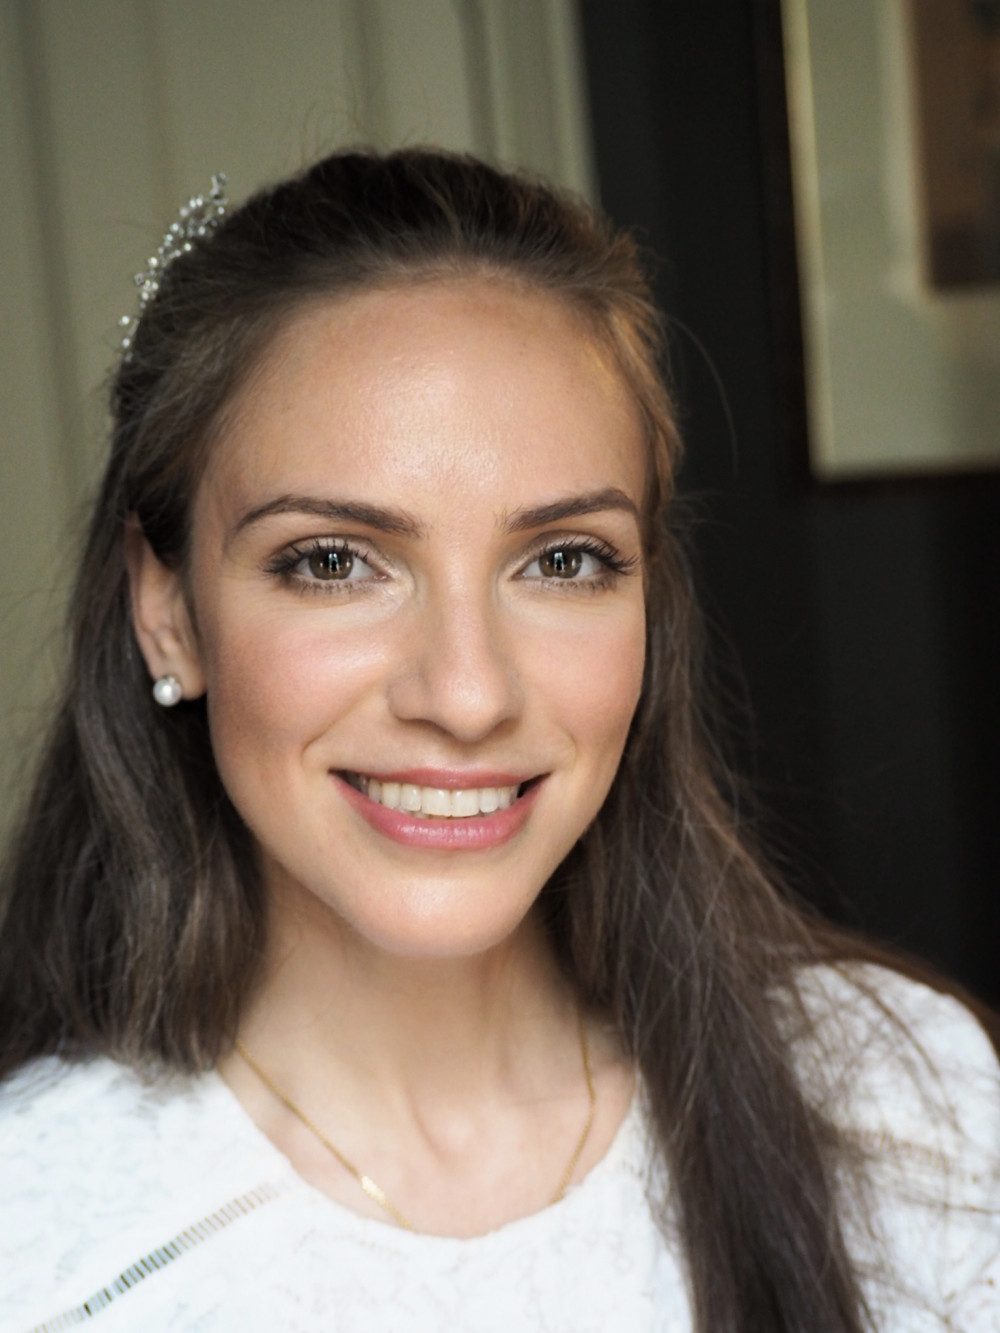 Another bridal makeup trial for a winter wedding. This lady wanted something really simple, natural but radiant at the same time. - Make Me Bridal Artist: Mel Kinsman. Photography by: Mel Kinsman. #classic #naturalmakeup #bridalmakeup #elegant #pretty